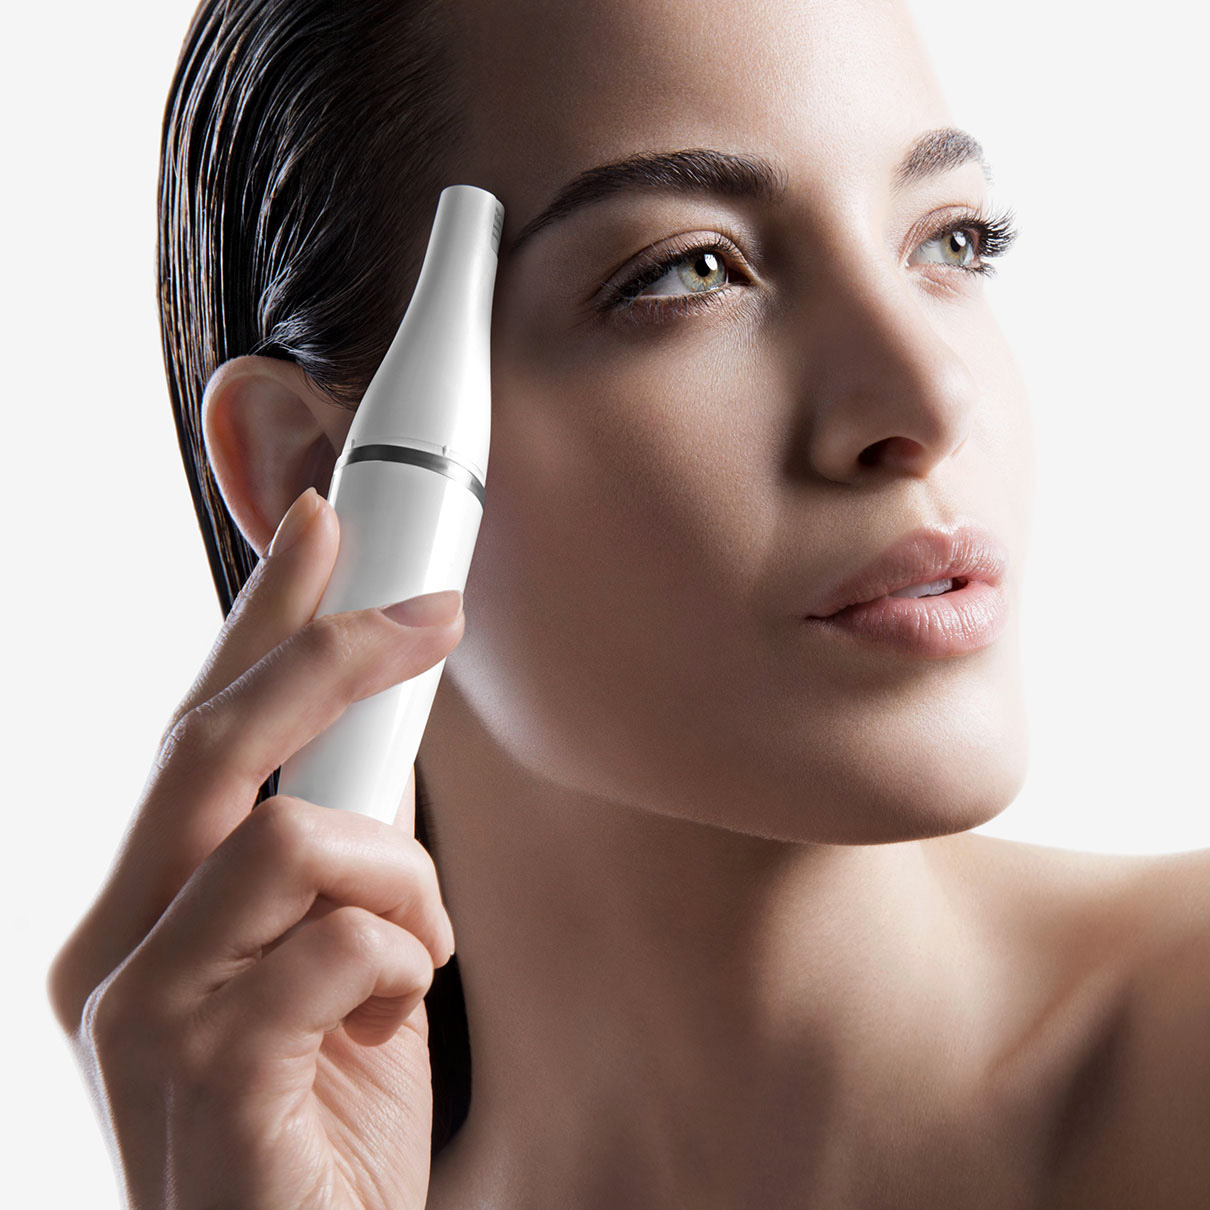 Braun FaceSpa 851V - Facial epilator in use